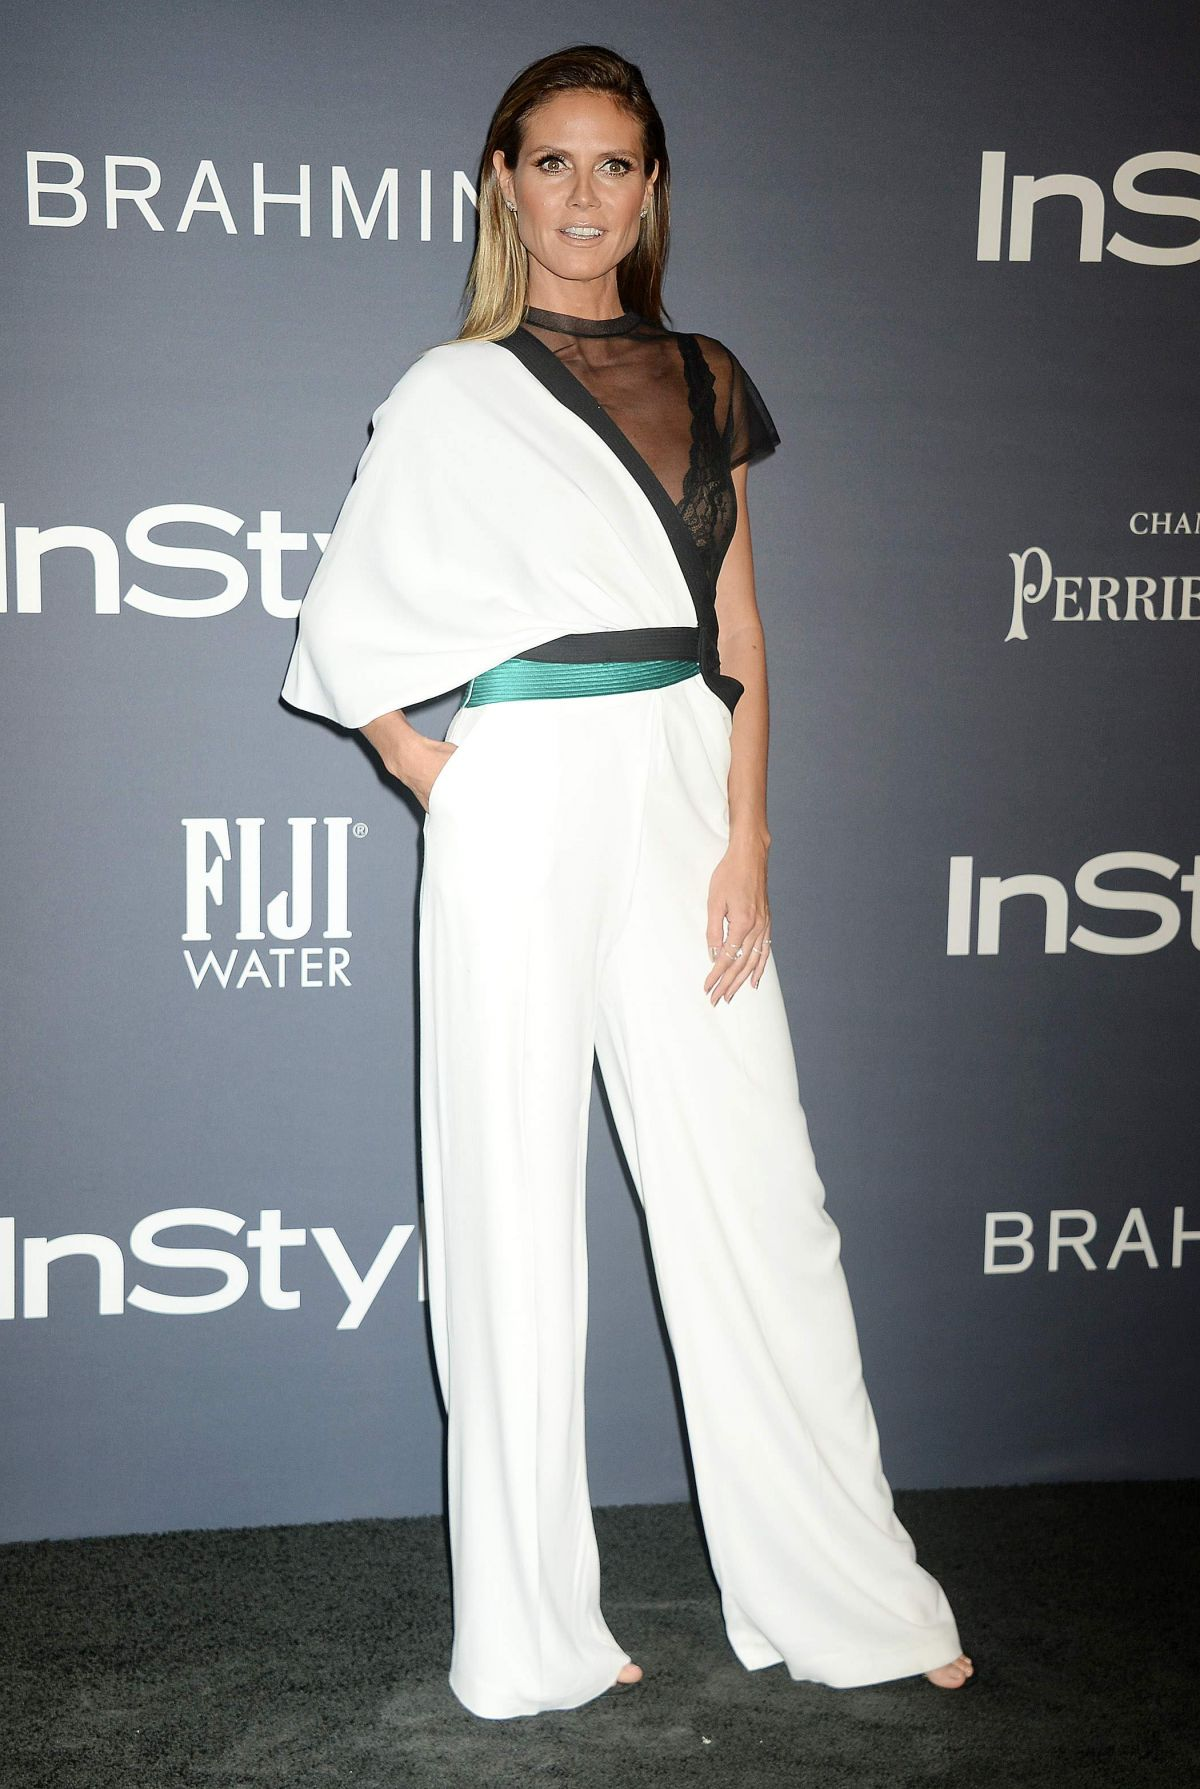 Heidi Klum Attend 3rd Annual InStyle Awards at The Getty Center in Los Angeles